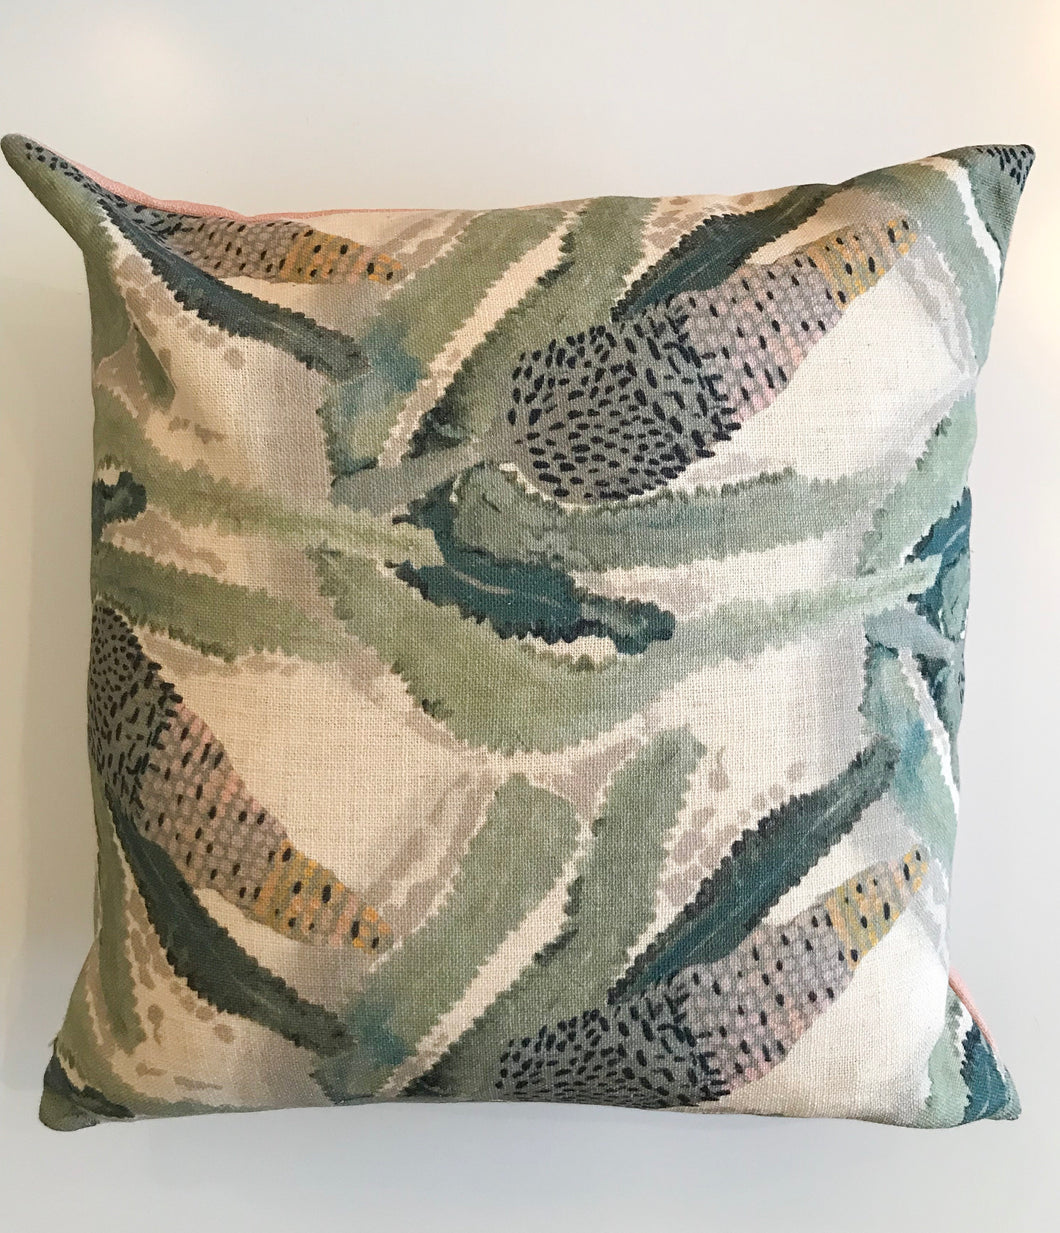 Banksia cushion